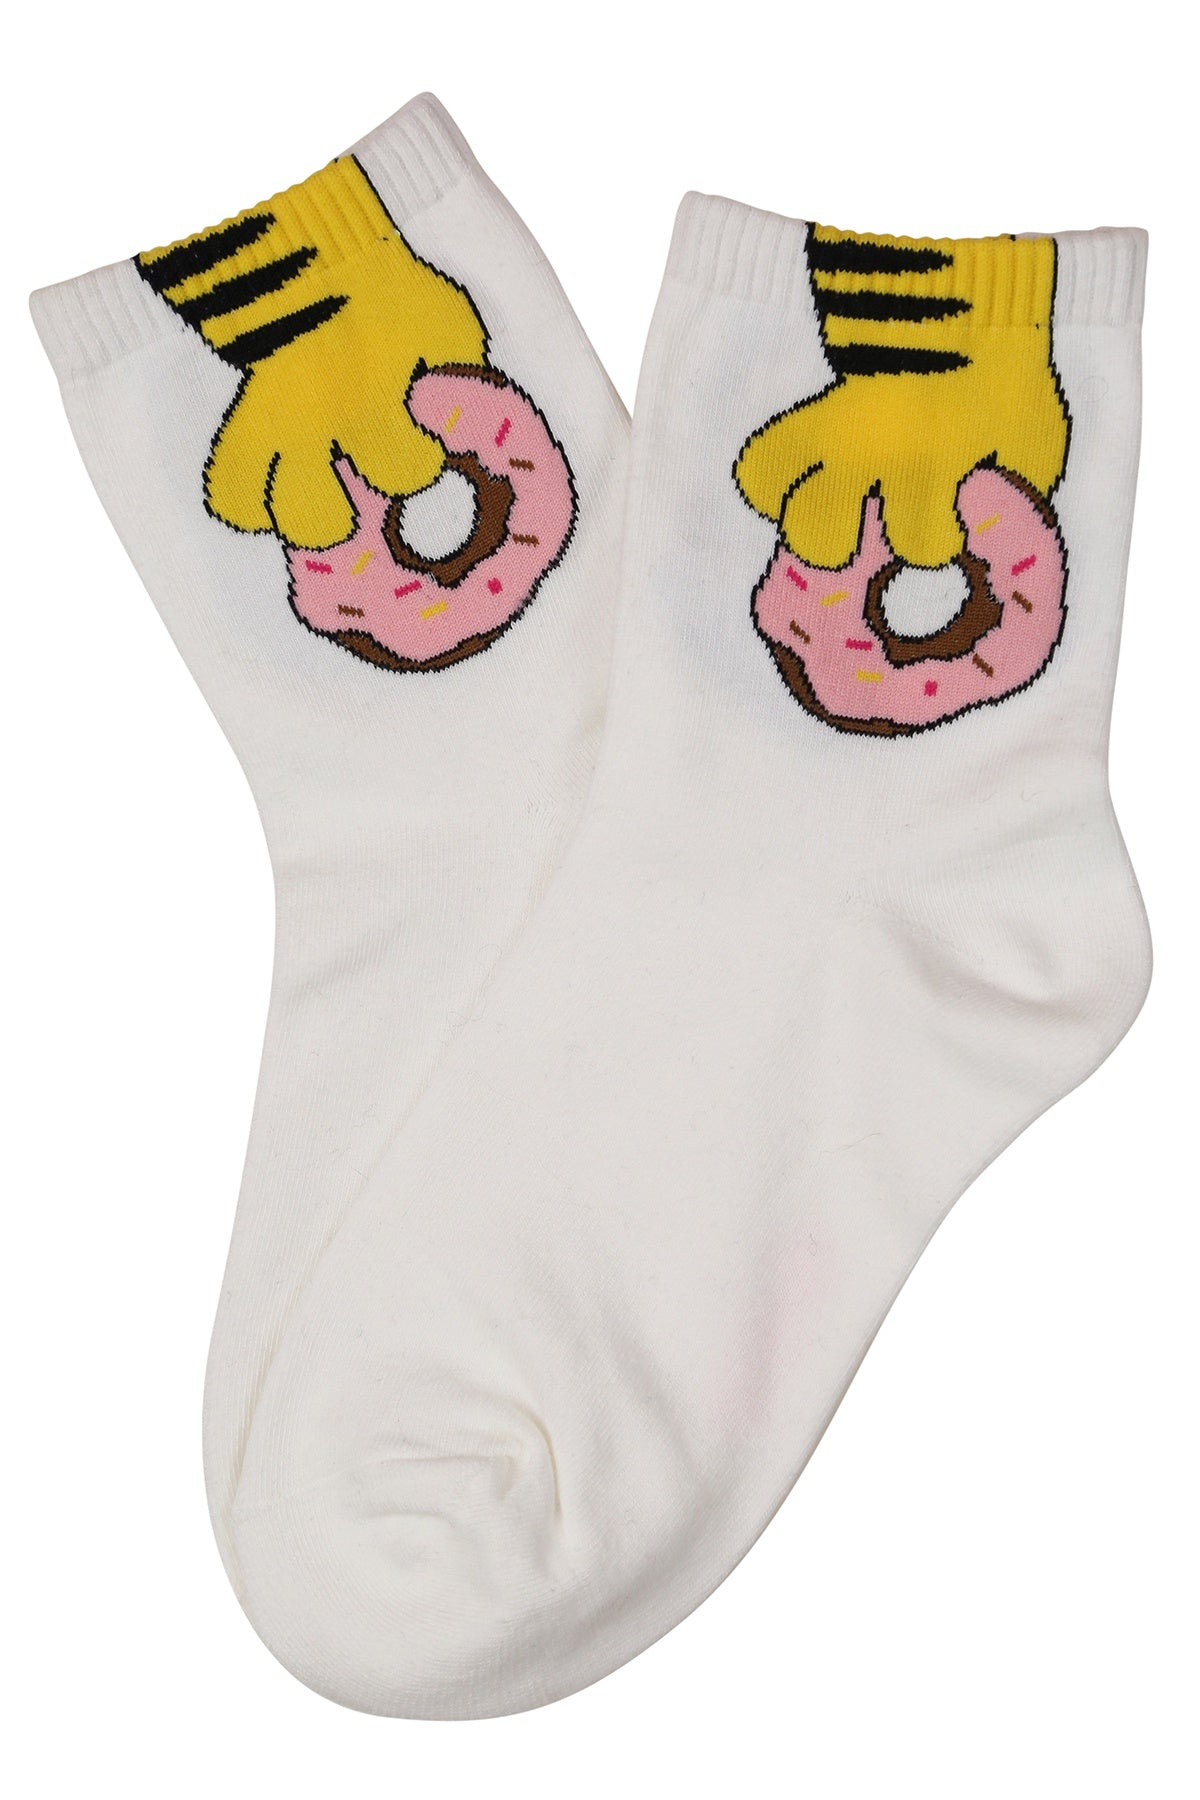 Donut Hand Cotton Socks White